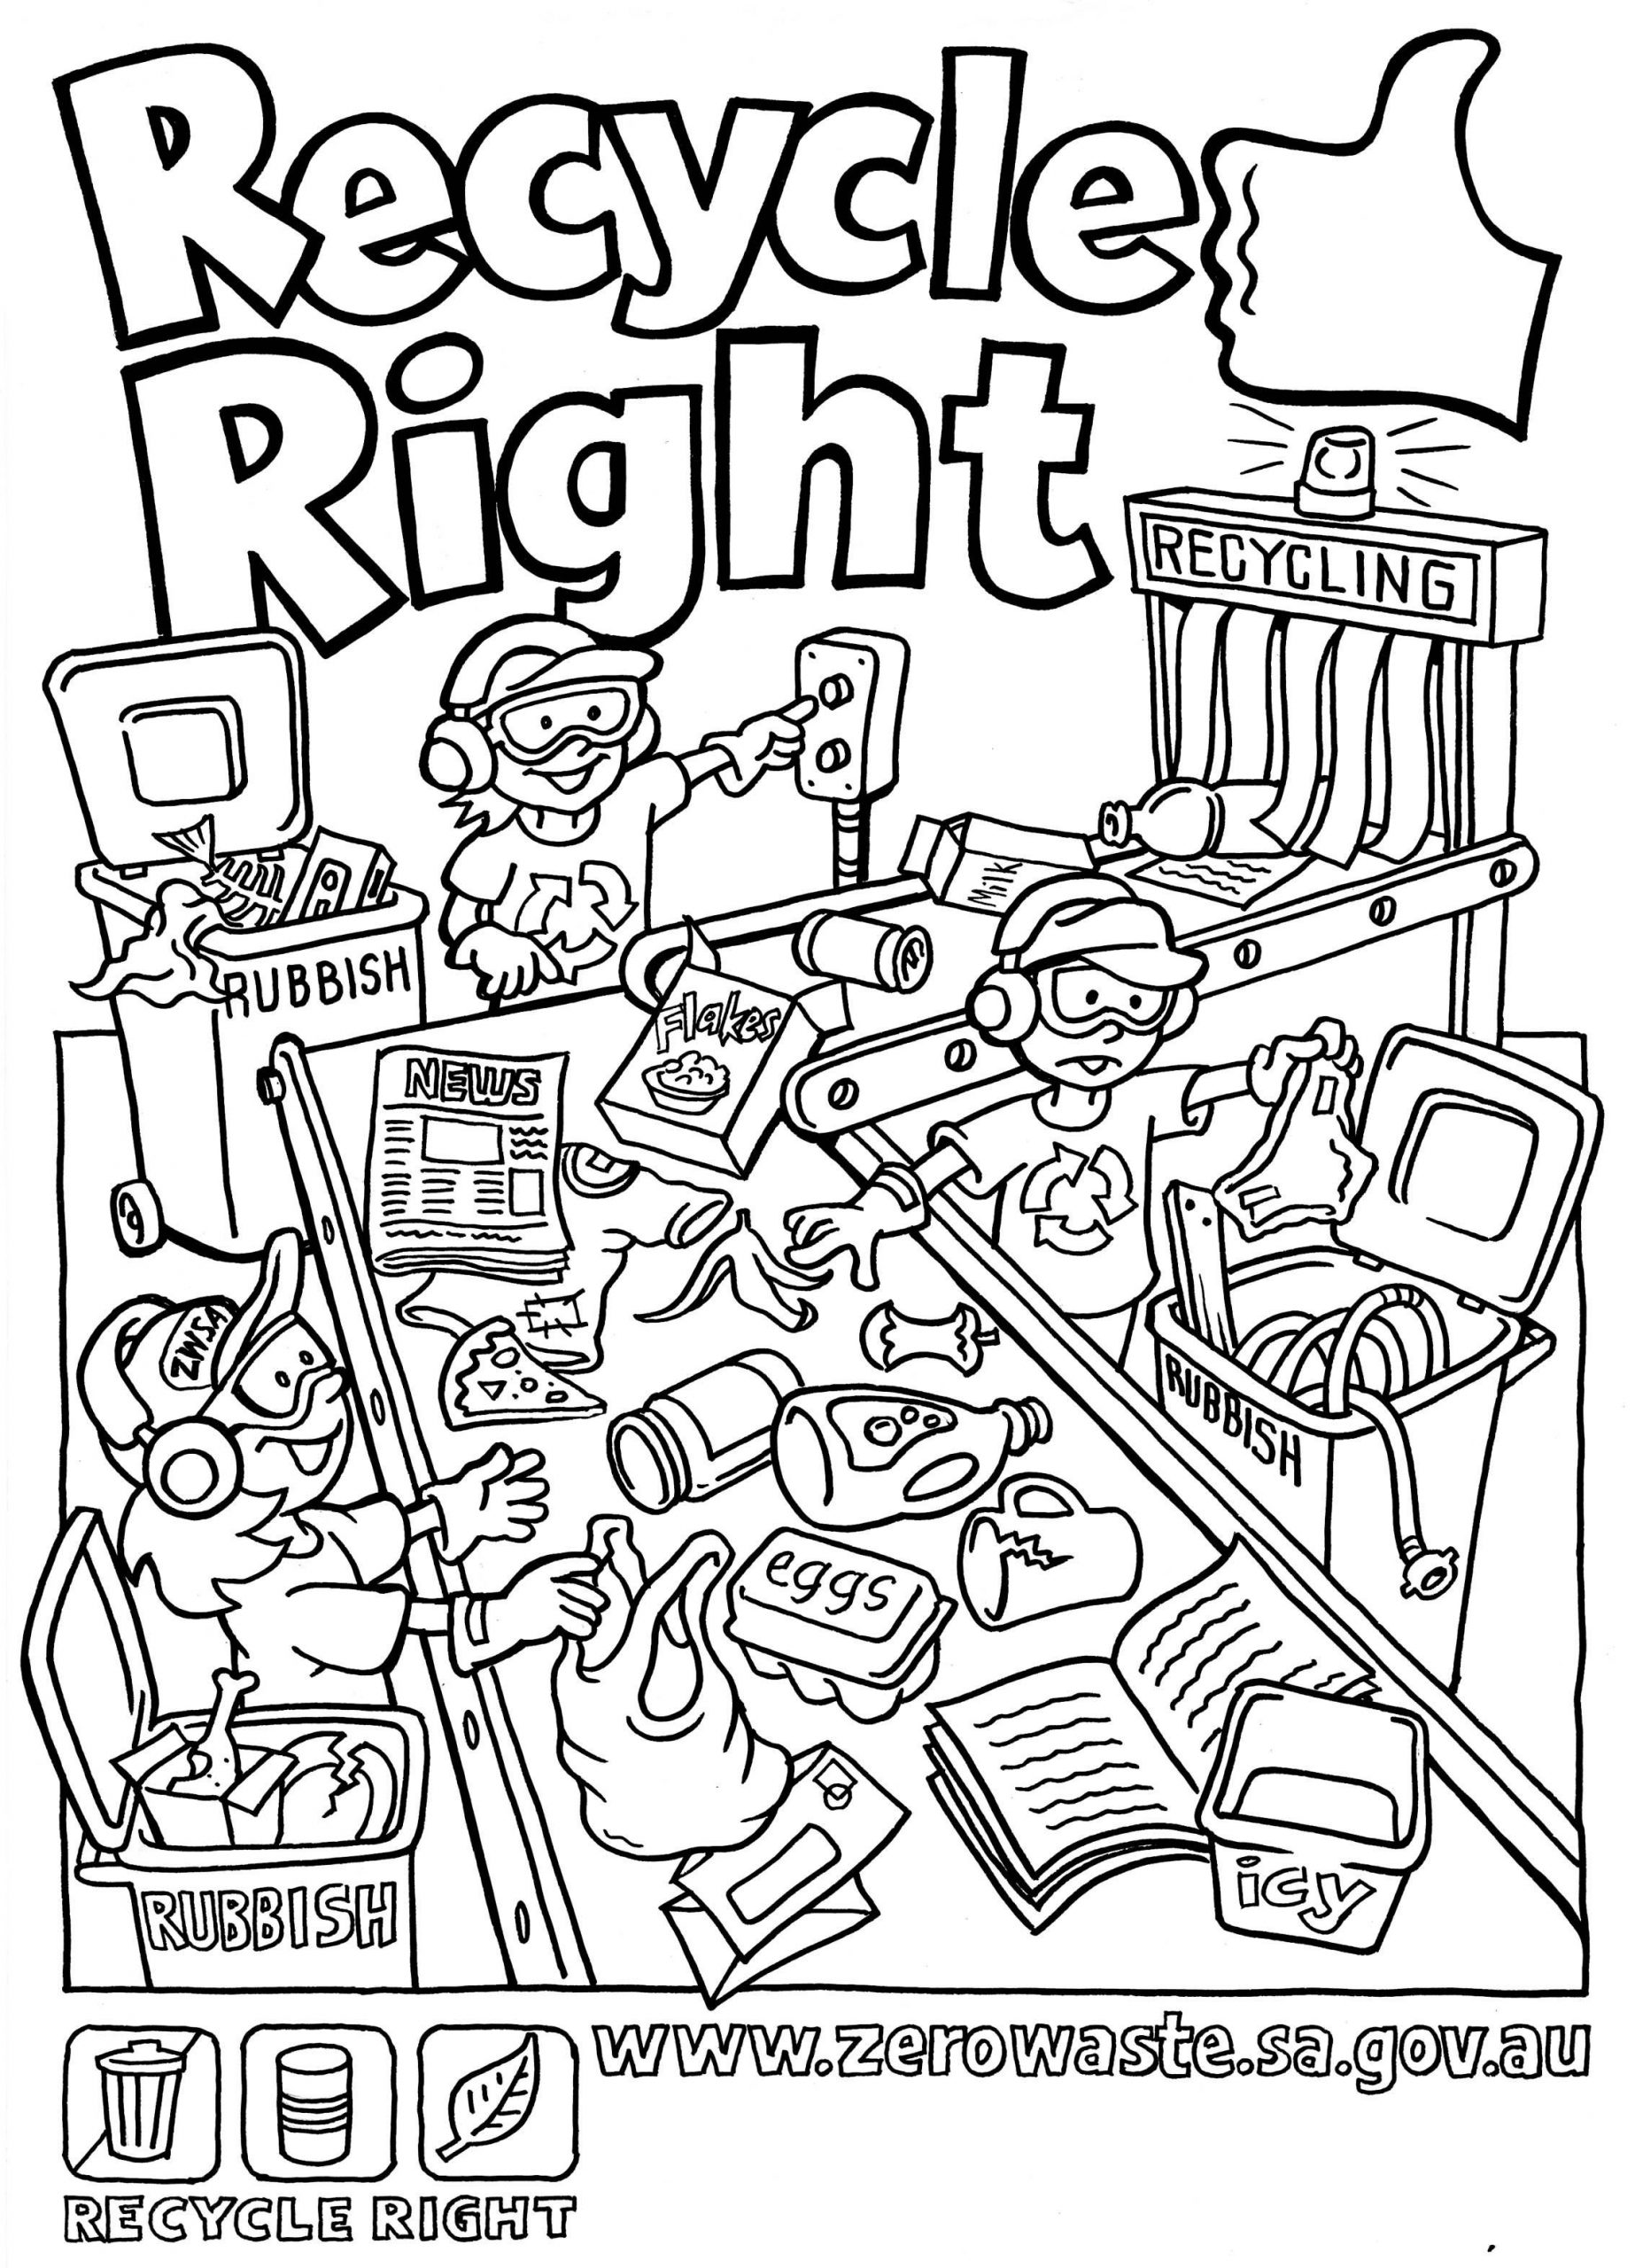 Recycling Worksheets for Middle School Recycling Coloring Pages for Kids Coloring Home